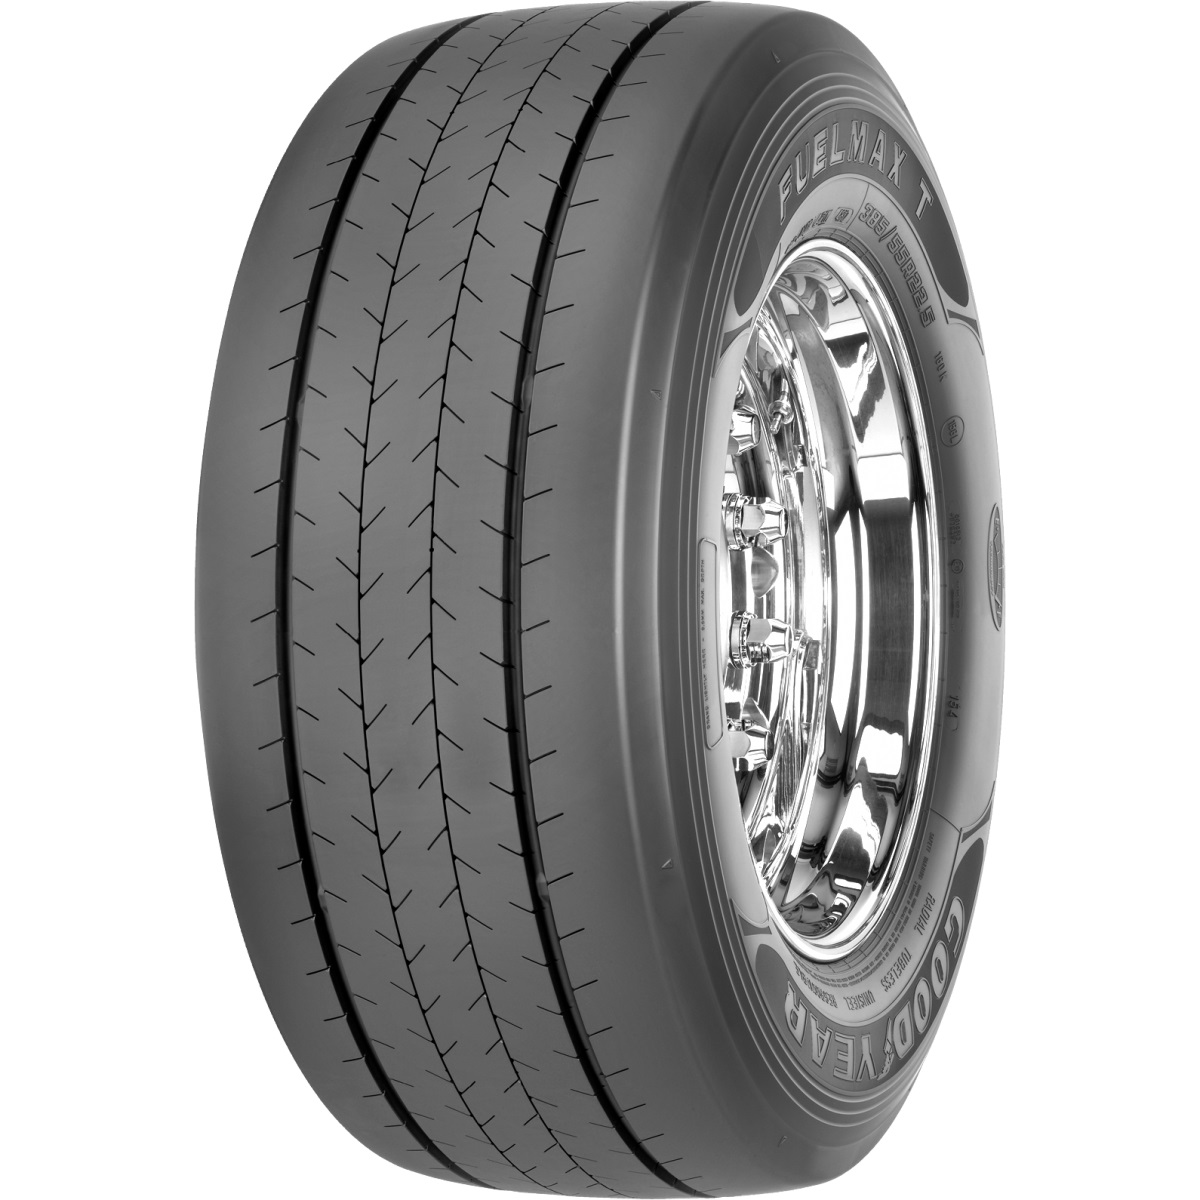 Anvelopa trailer GOODYEAR FUELMAX T 385/55 R22.5 160K